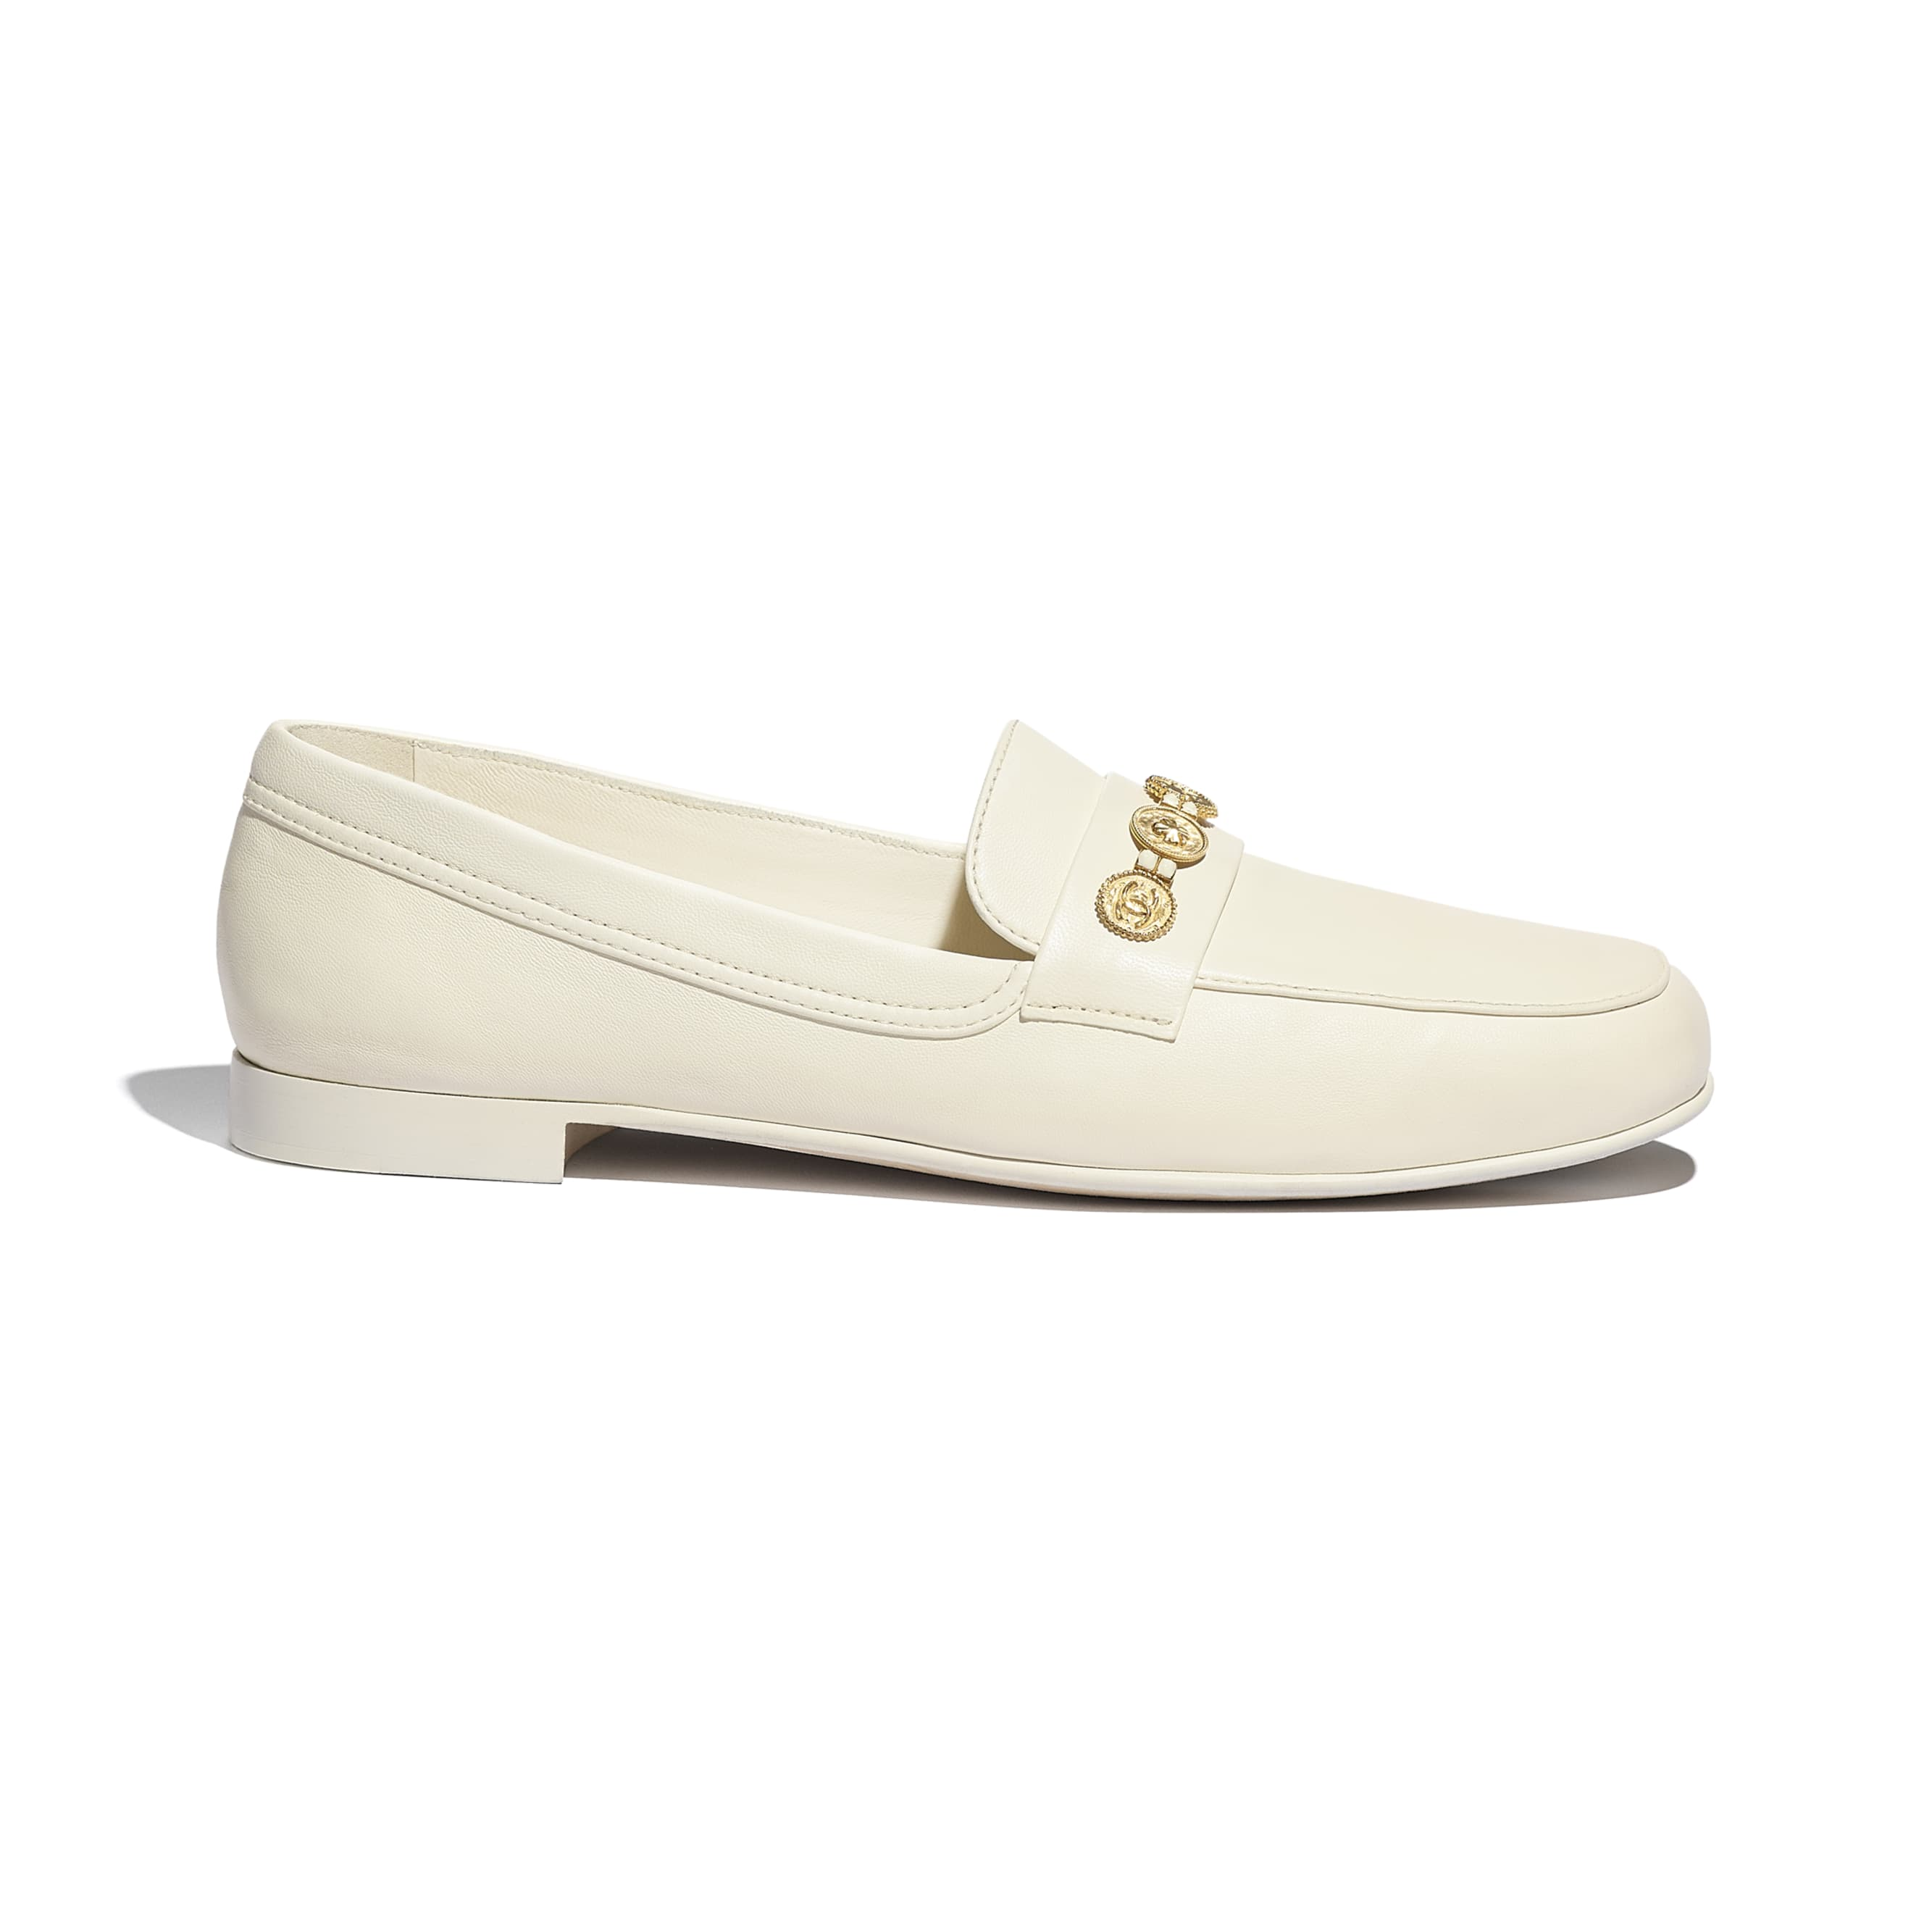 Loafers - Ivory - Lambskin - CHANEL - Default view - see standard sized version